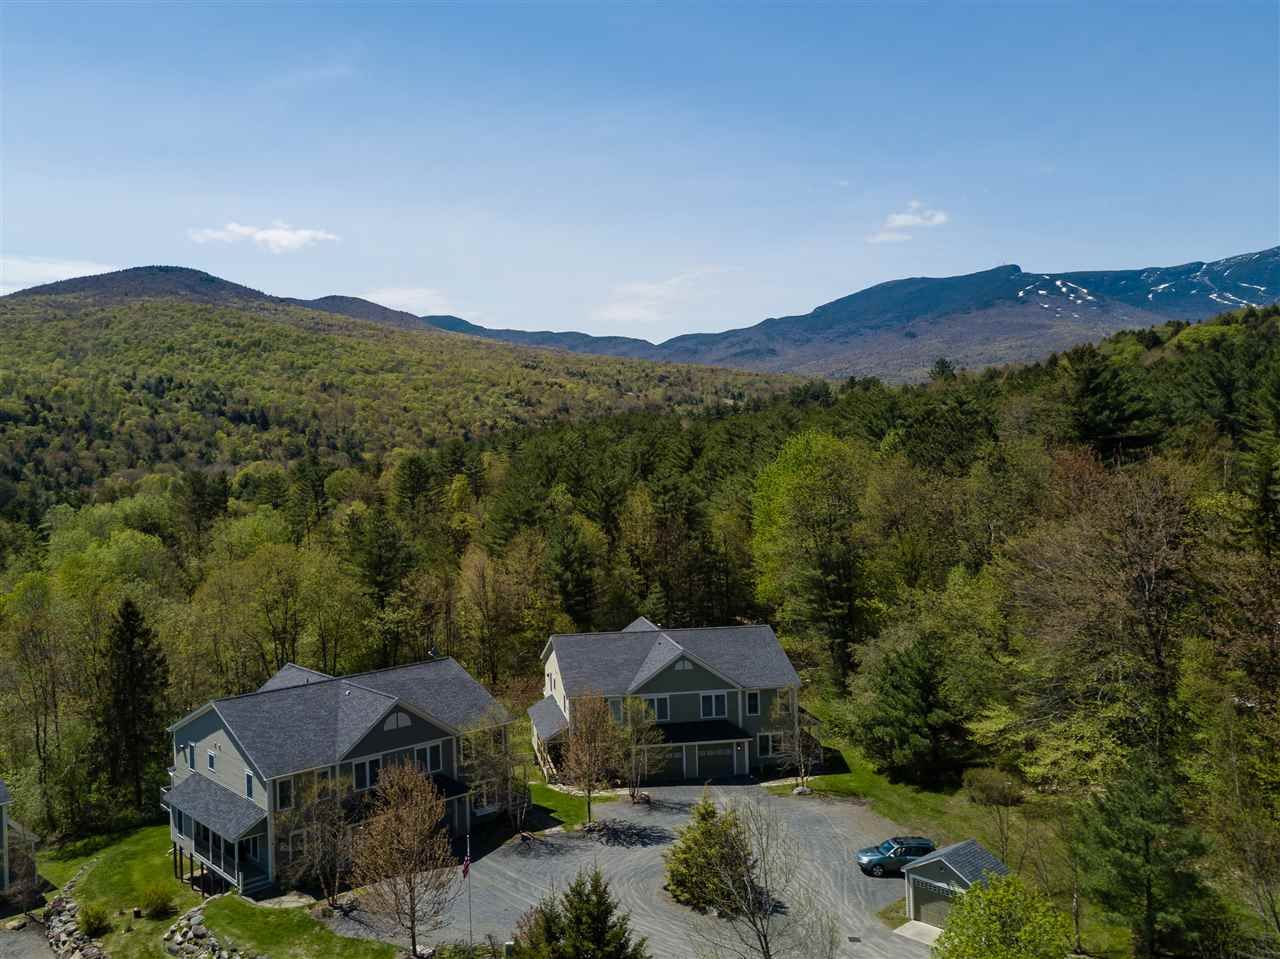 149 Edson Hill 4 Stowe Vt 05672 Bateman Group Stowe Mountain Resort Condos For Sale